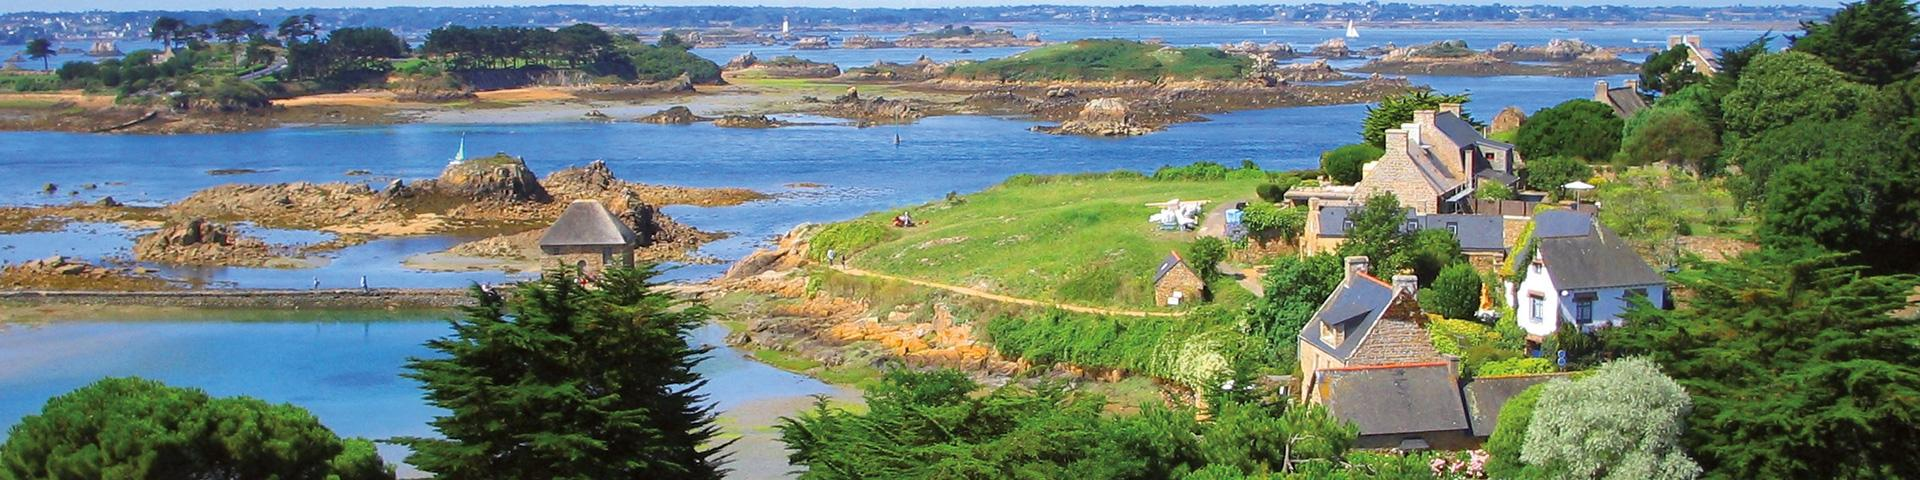 The island of Bréhat, Brittany